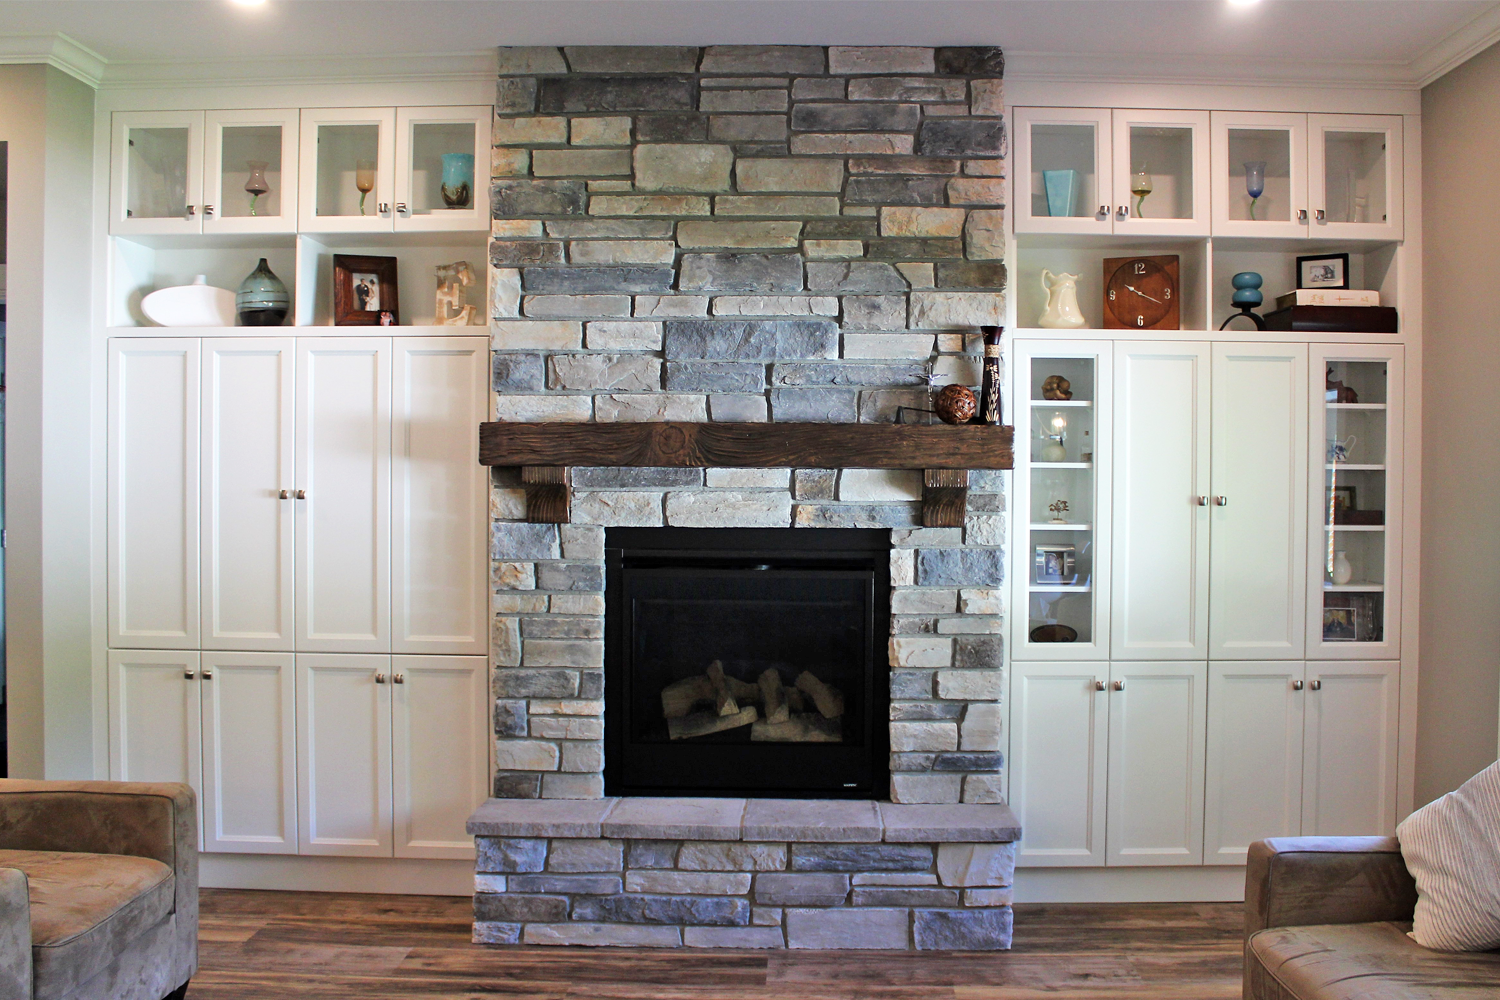 Greenwood Fireplace.png